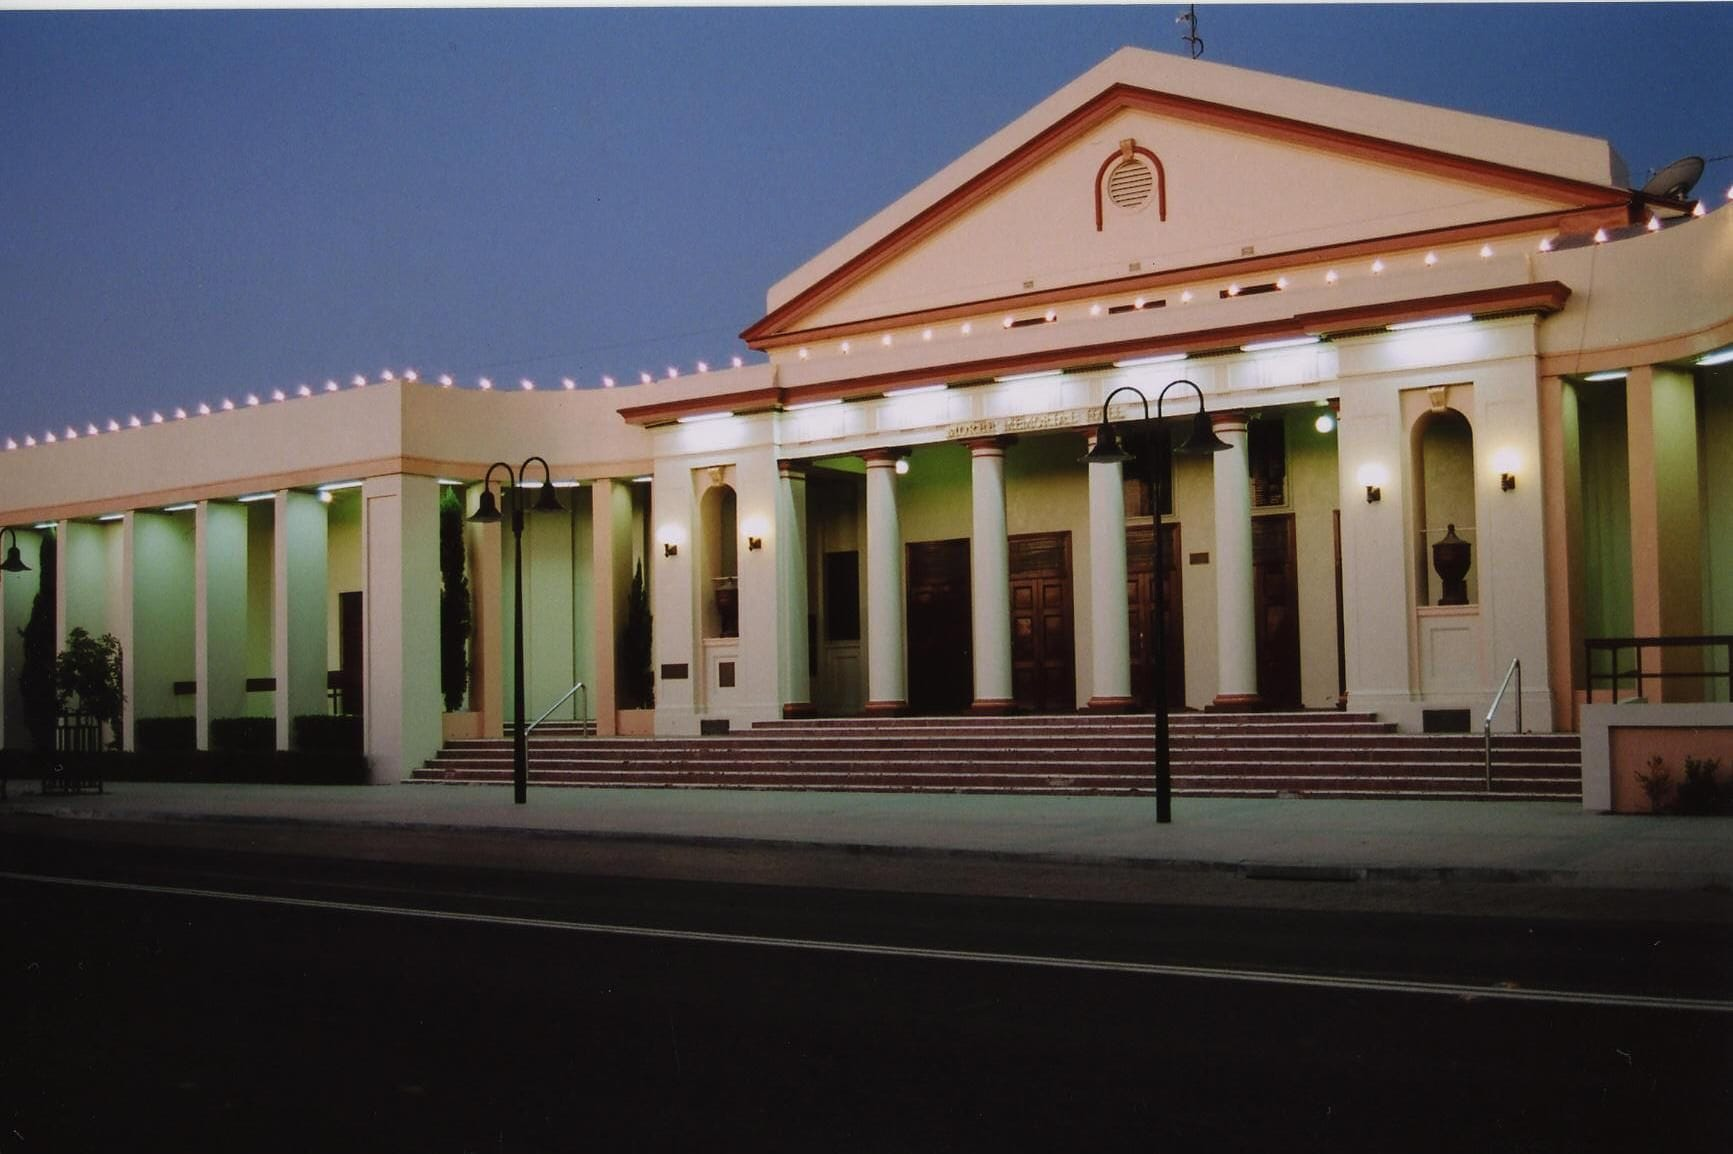 art deco heritage history moree plains things to do